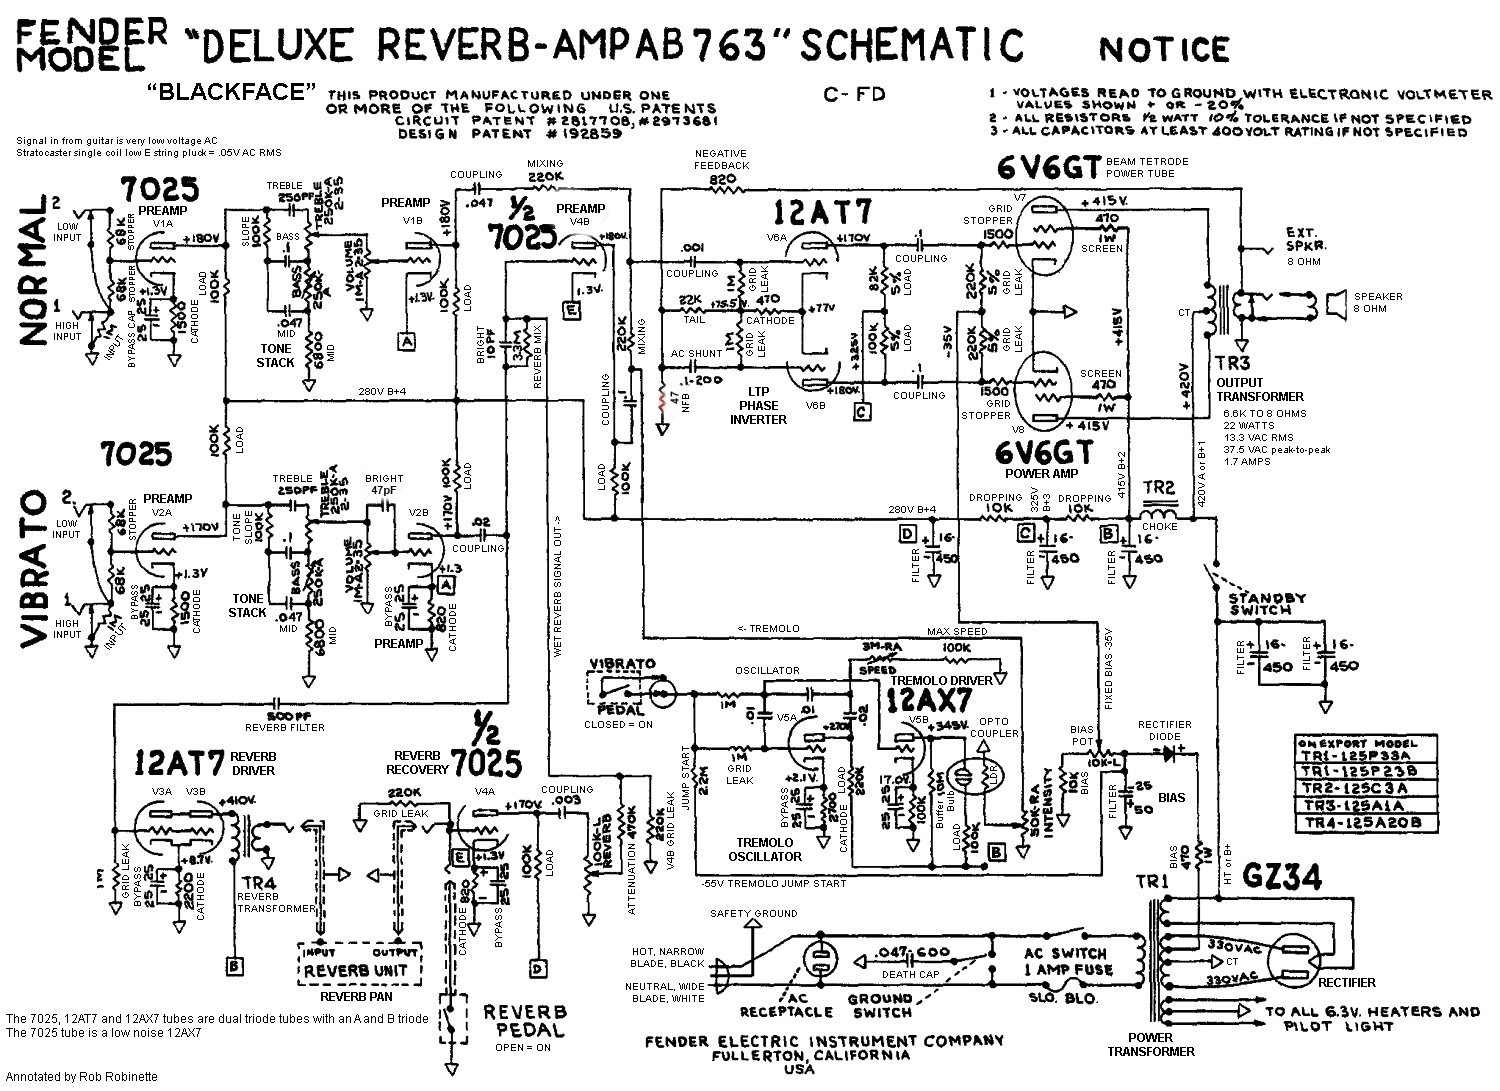 Reading Schematics Tl 1000 R Wiring Diagram Notice The Reverb Circuit At Lower Left And Tremolo Center Every Component Function Is Listed On This Schematic Click Image For Full